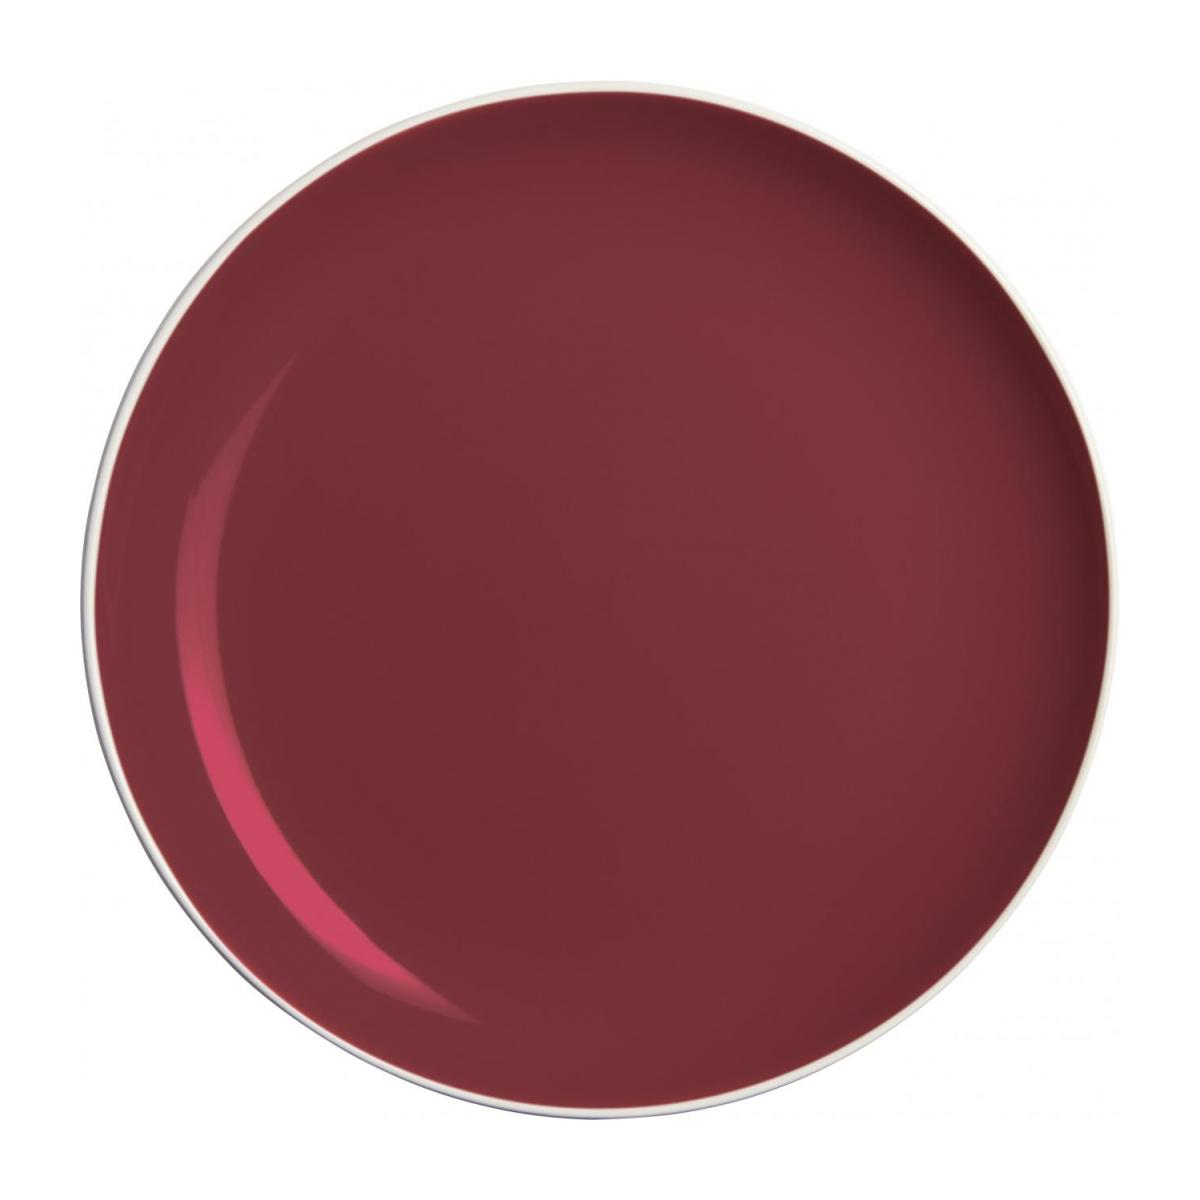 Flat plate made of sandstone, white and burgundy n°1